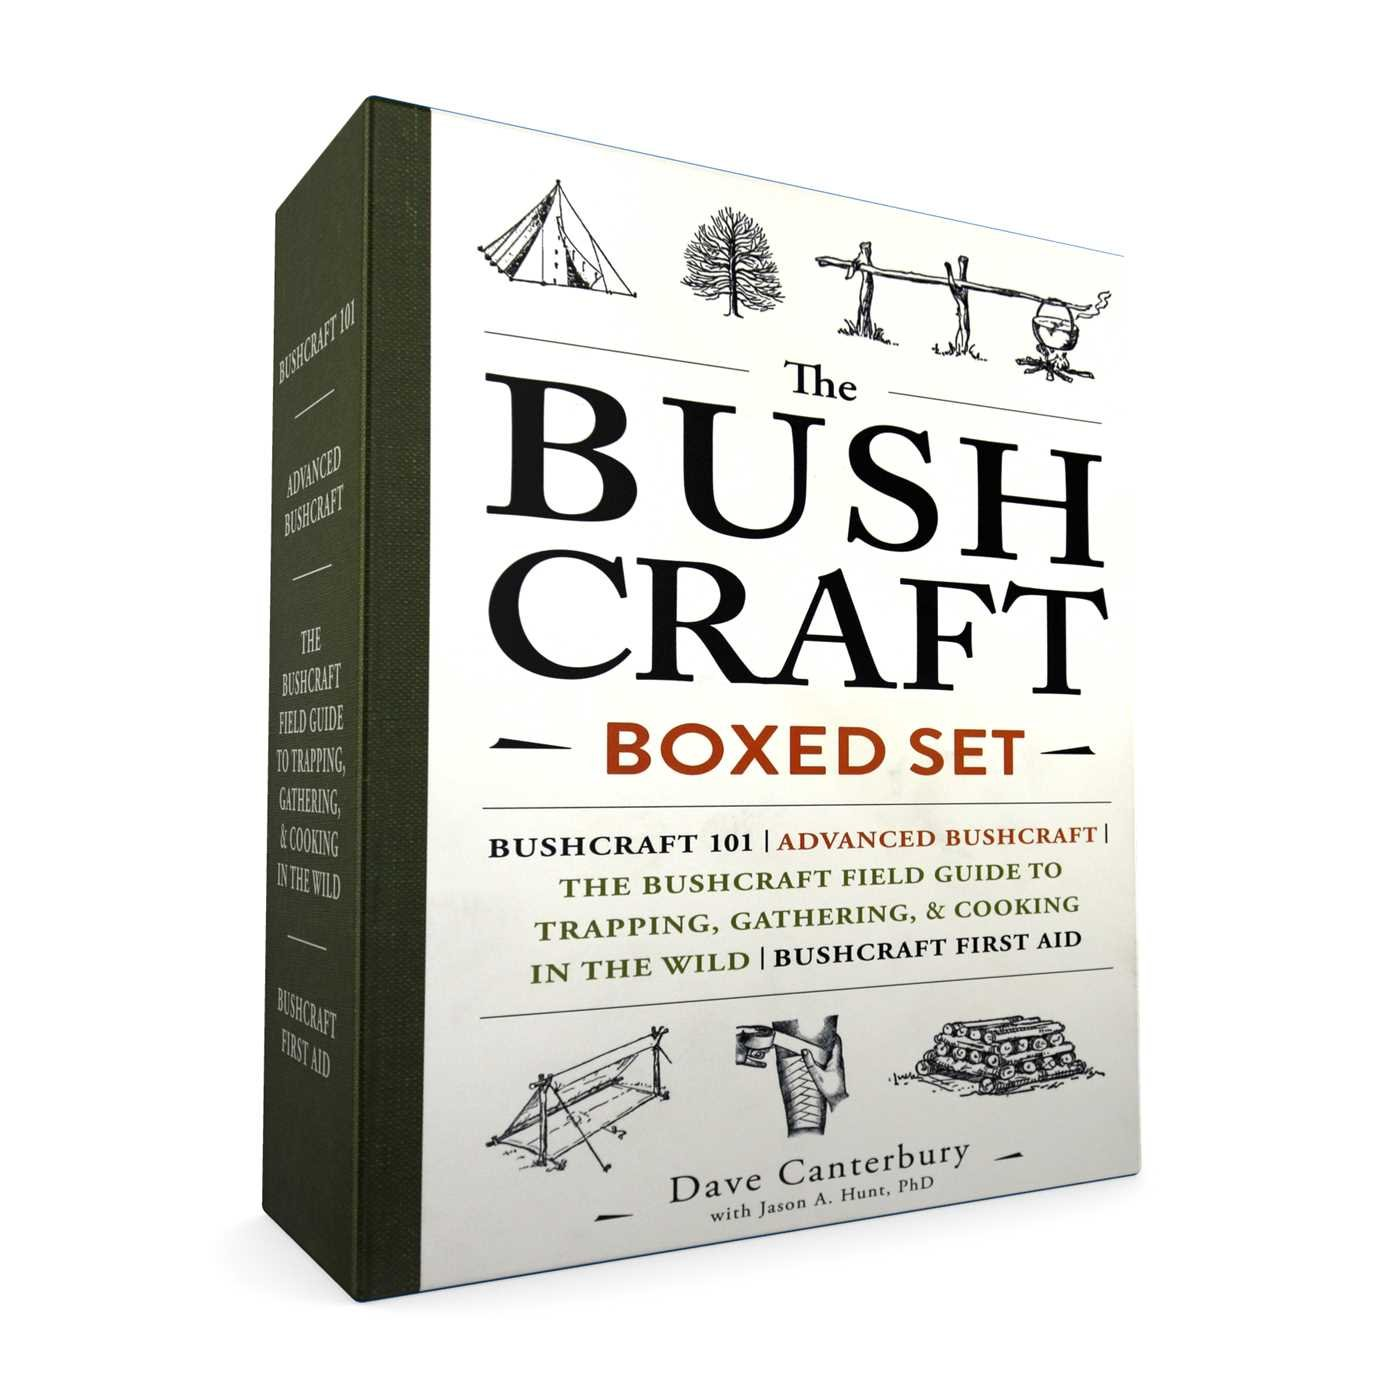 Download The Bushcraft Boxed Set: Bushcraft 101; Advanced Bushcraft; The Bushcraft Field Guide to Trapping, Gathering, & Cooking in the Wild; Bushcraft First Aid pdf epub